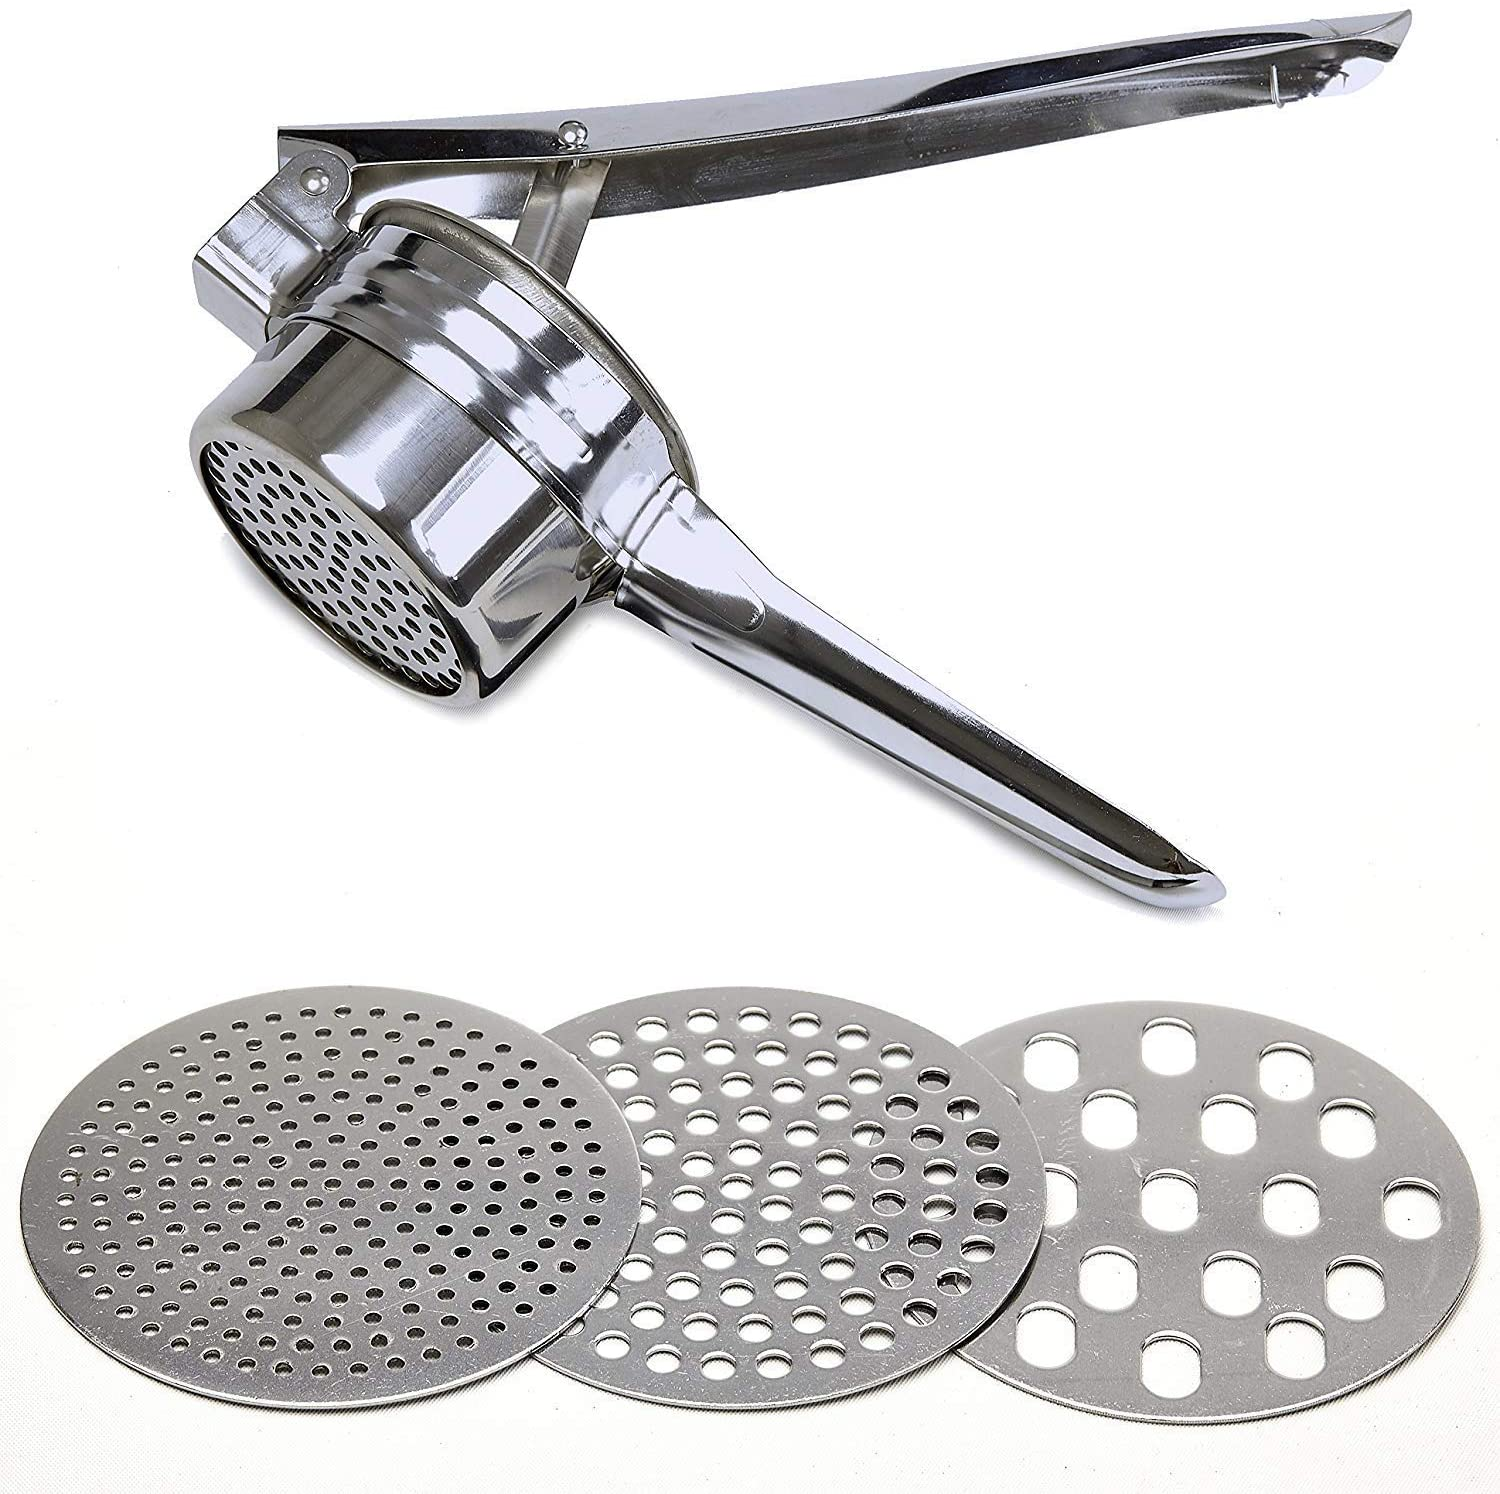 Stainless Steel Potato Ricer – Manual Masher for Potatoes, Fruits, Vegetables, Yams, Squash, Baby Food and More - 3 Interchangeable Discs for Fine, Medium, and Coarse, Easy To Use - by Tundras